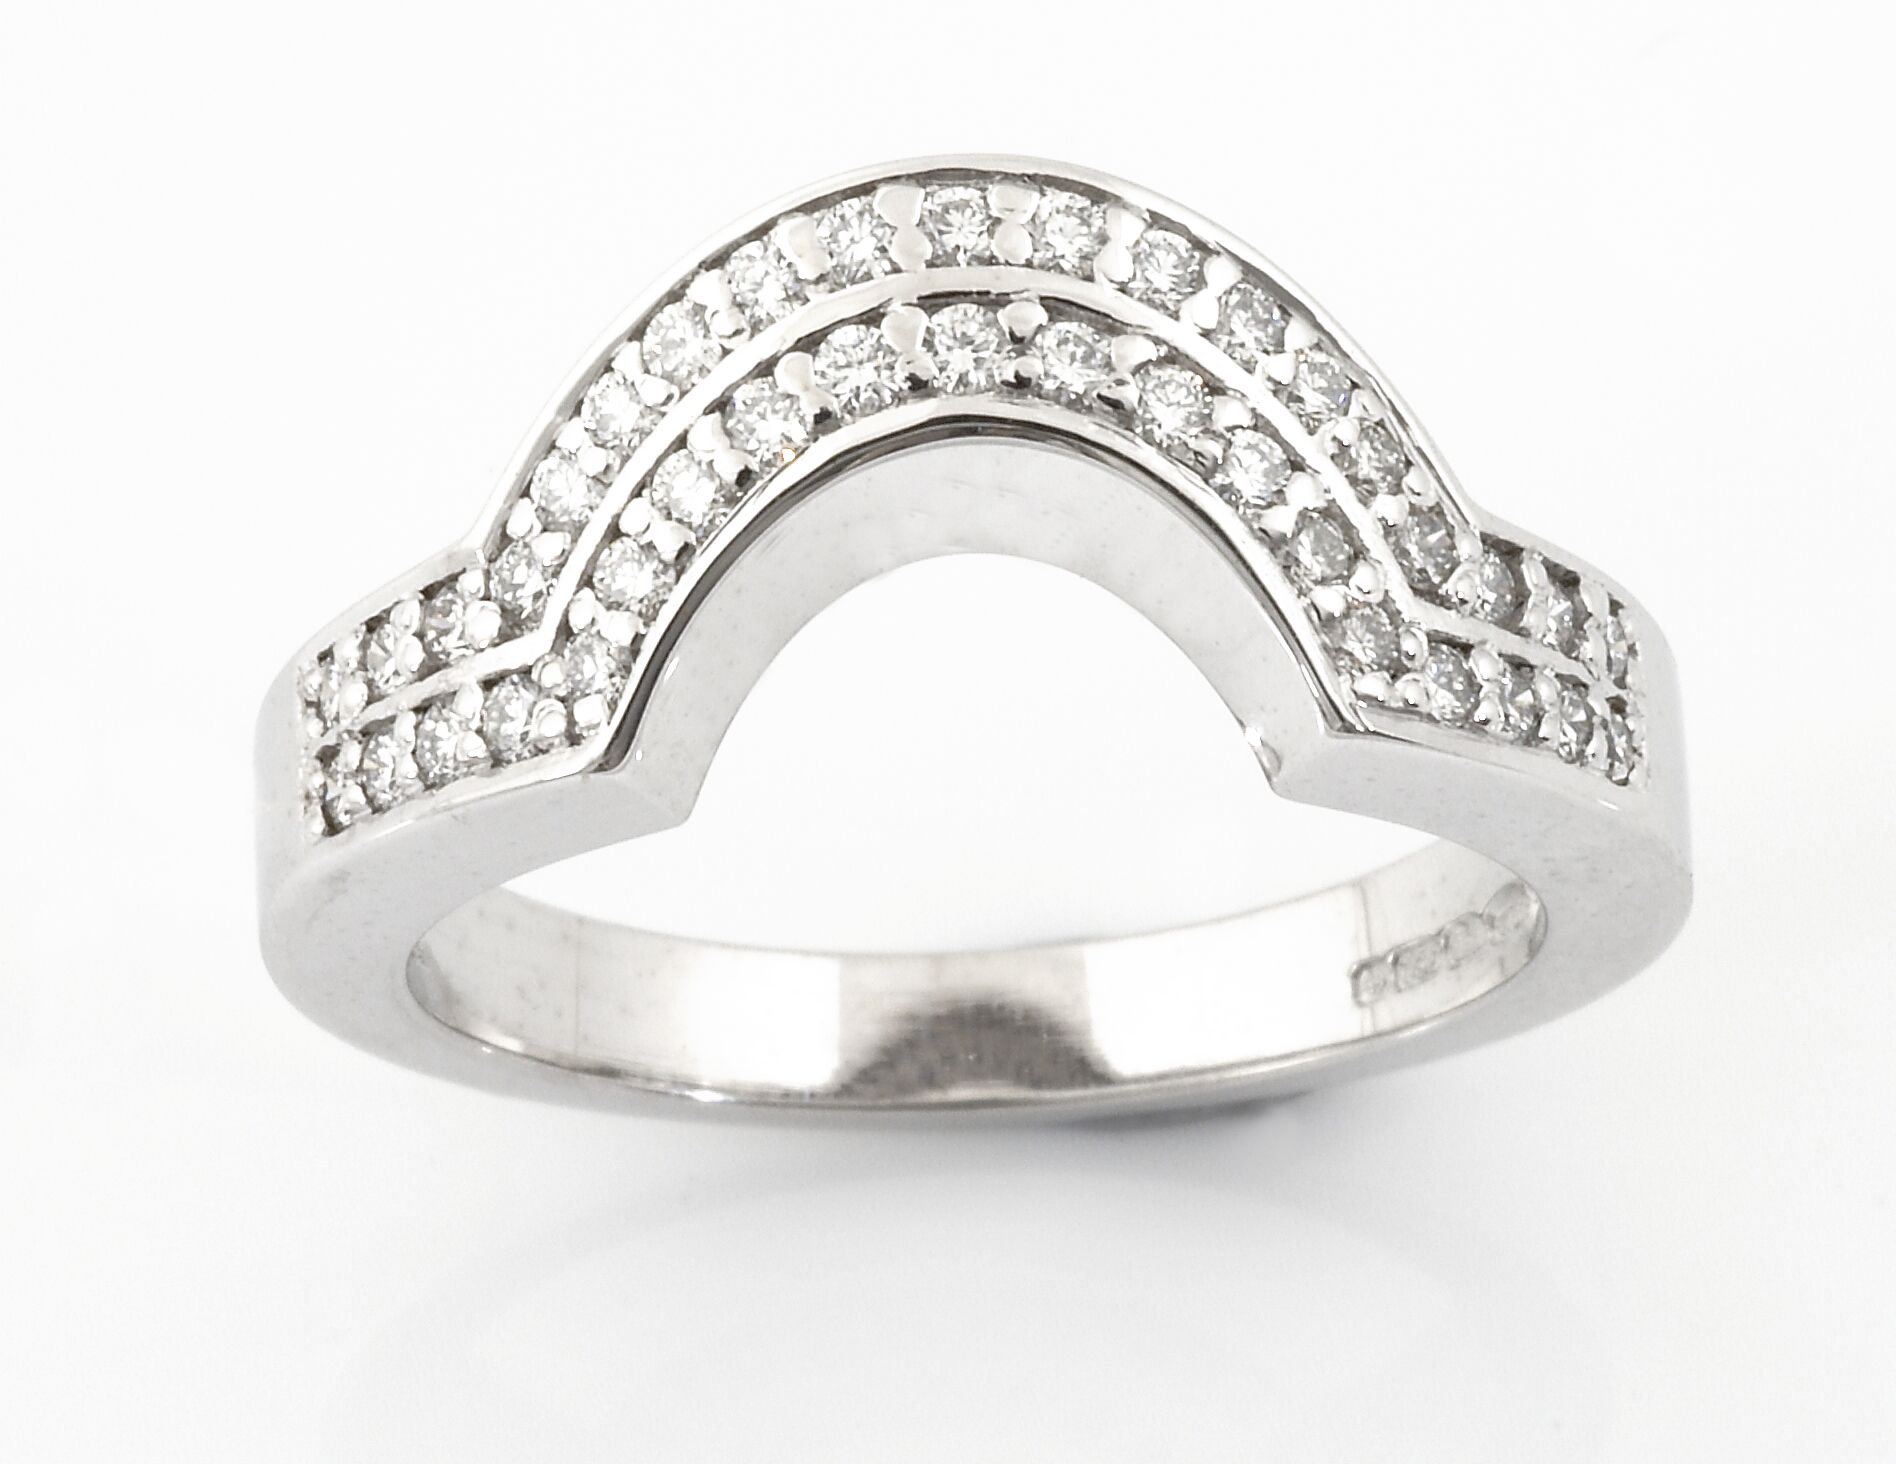 Matching fit 18ct White Gold twin channel wedding ring